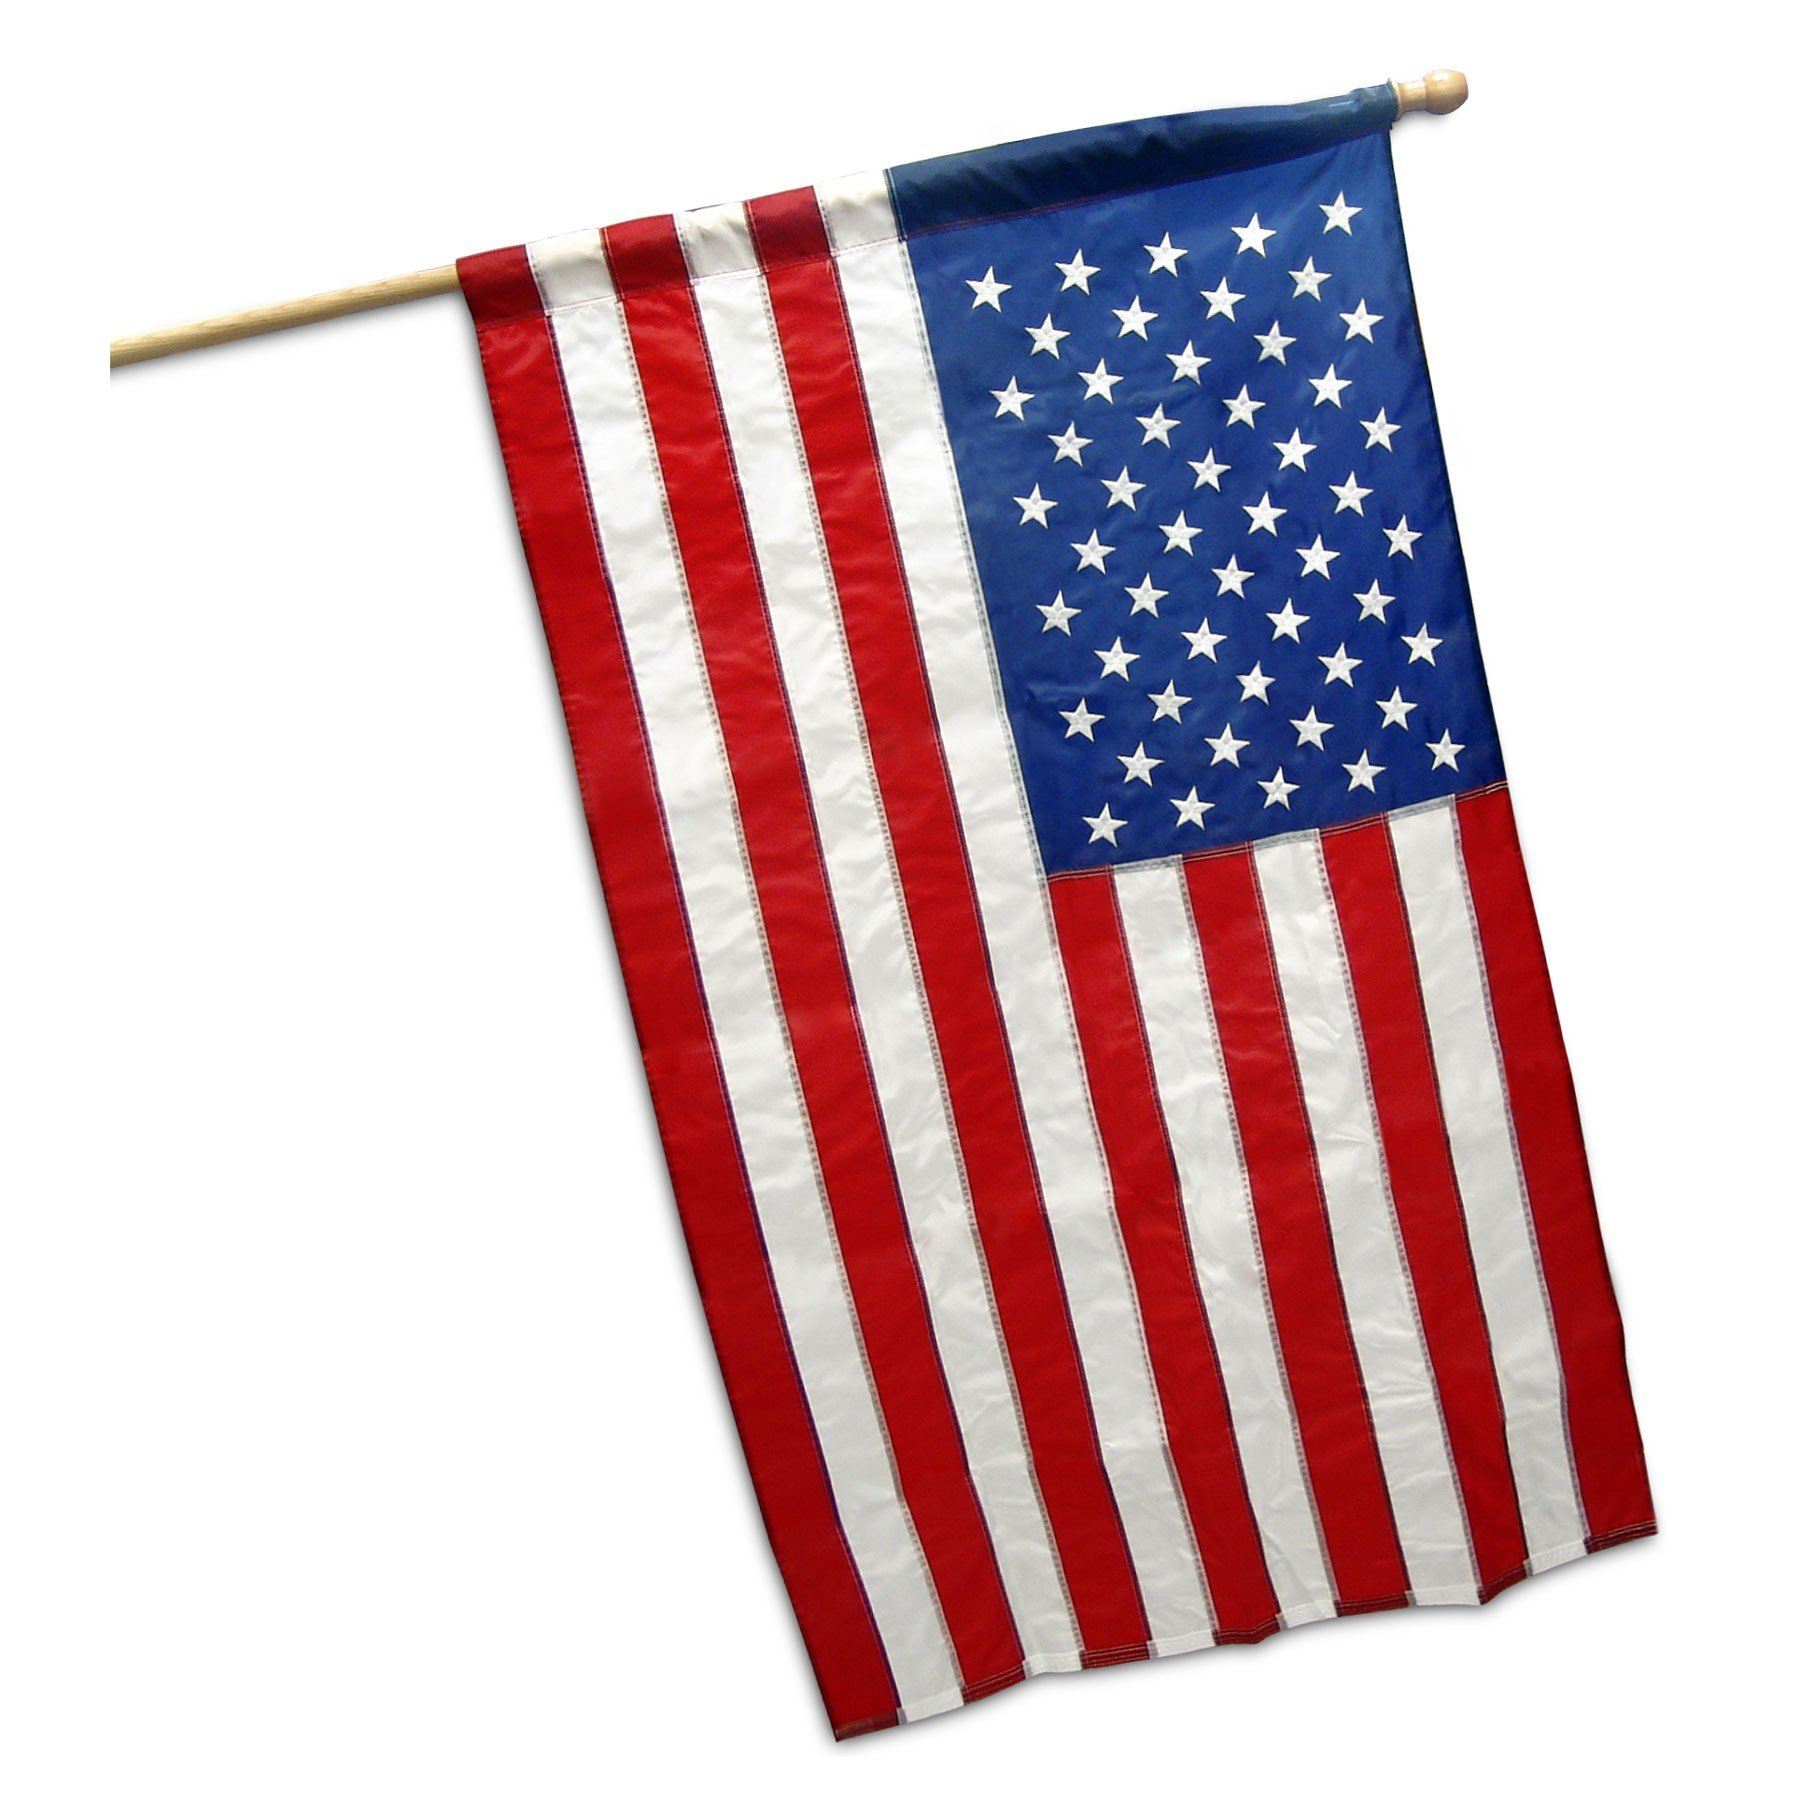 G128 - American USA US Flag 2.5x4 Ft Pole Sleeve Embroidered Stars Sewn Stripes 210D Quality Oxford Nylon with Pole Sleeve (Flag Pole is NOT included)